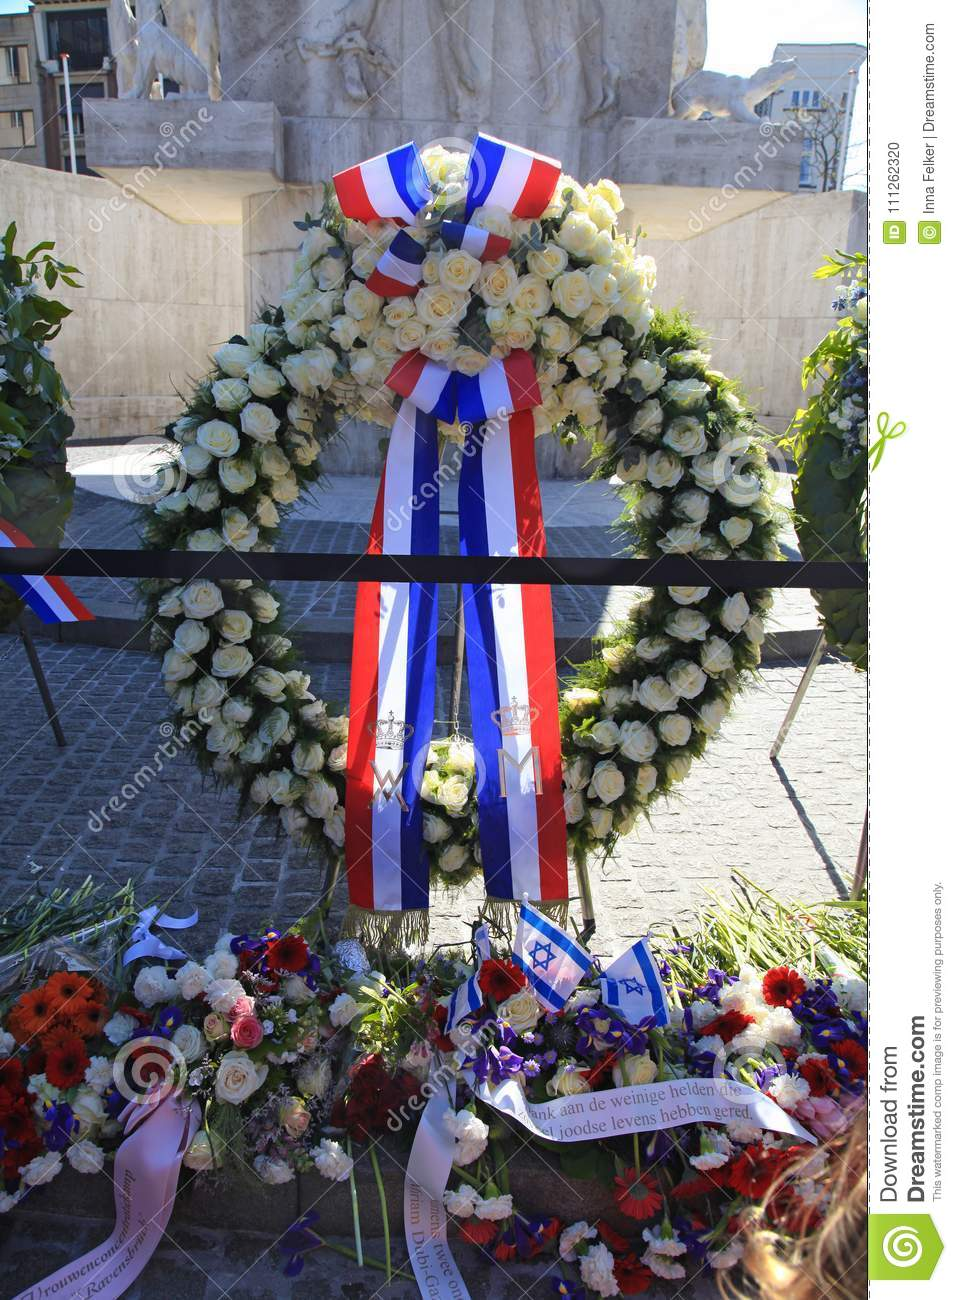 Flowers near The National Monument to memorialize the victims of